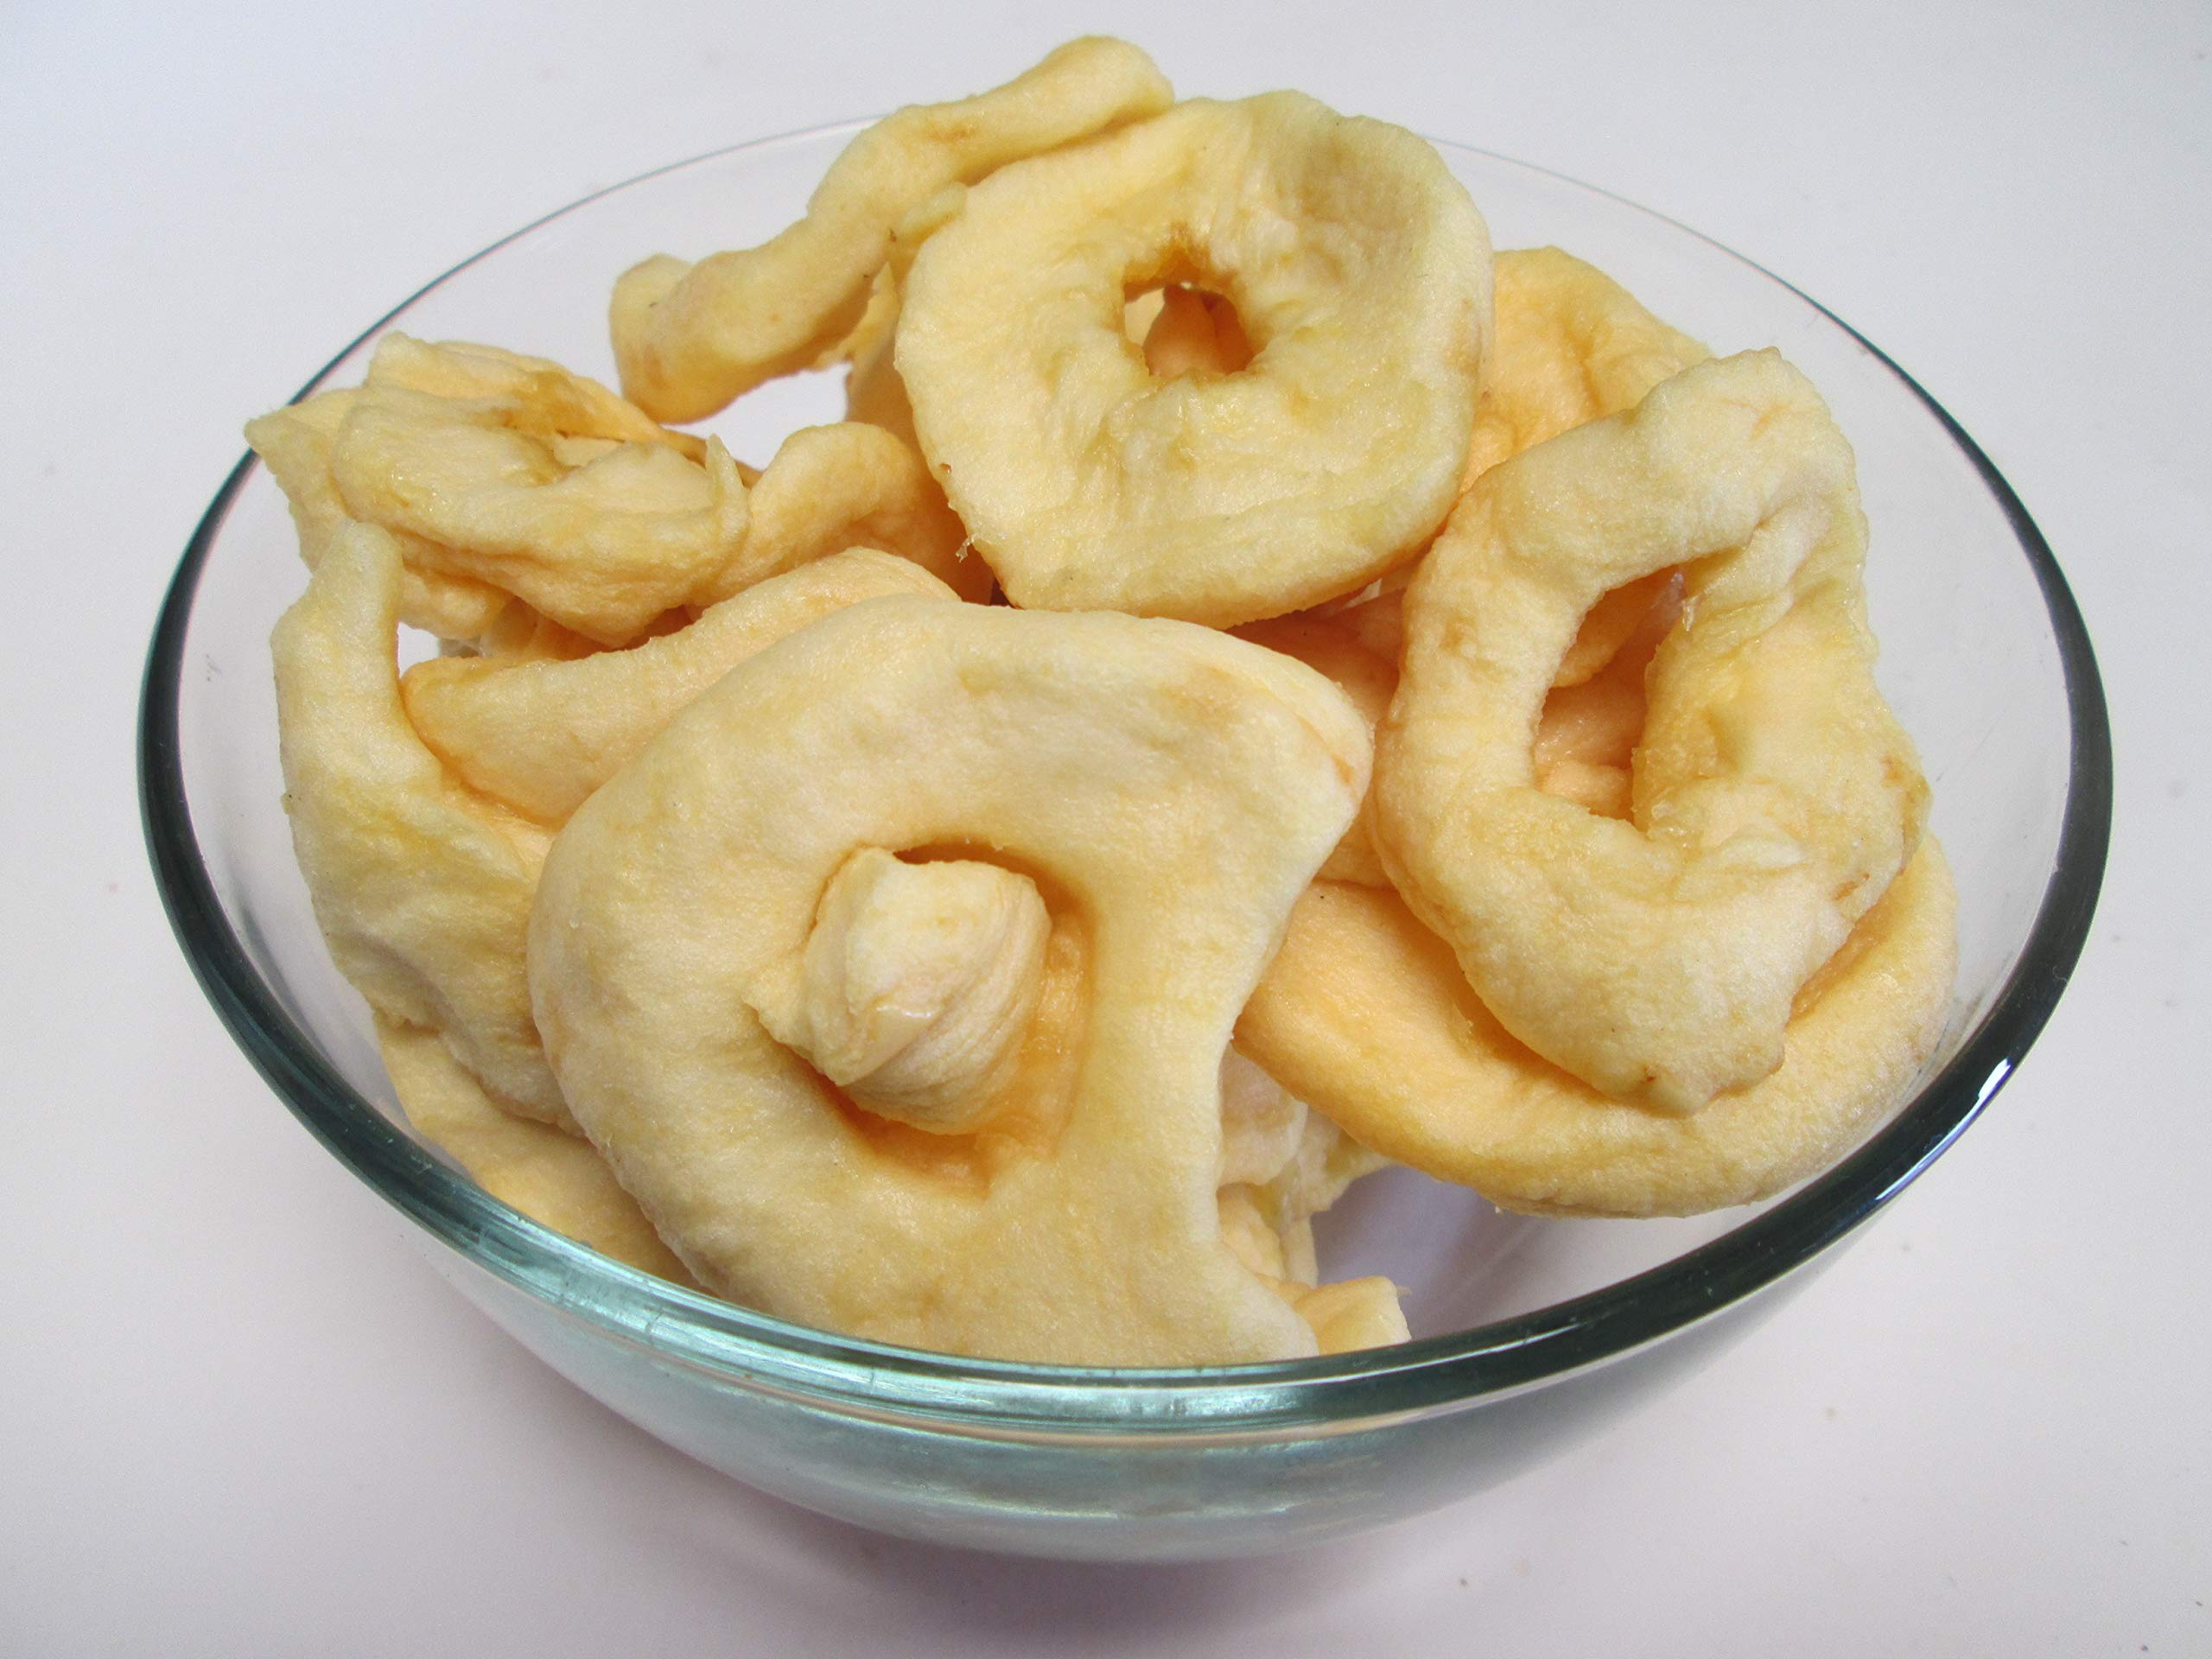 Dried Apple Rings 5 Pound Bag (Bulk) by The Nutty Fruit House